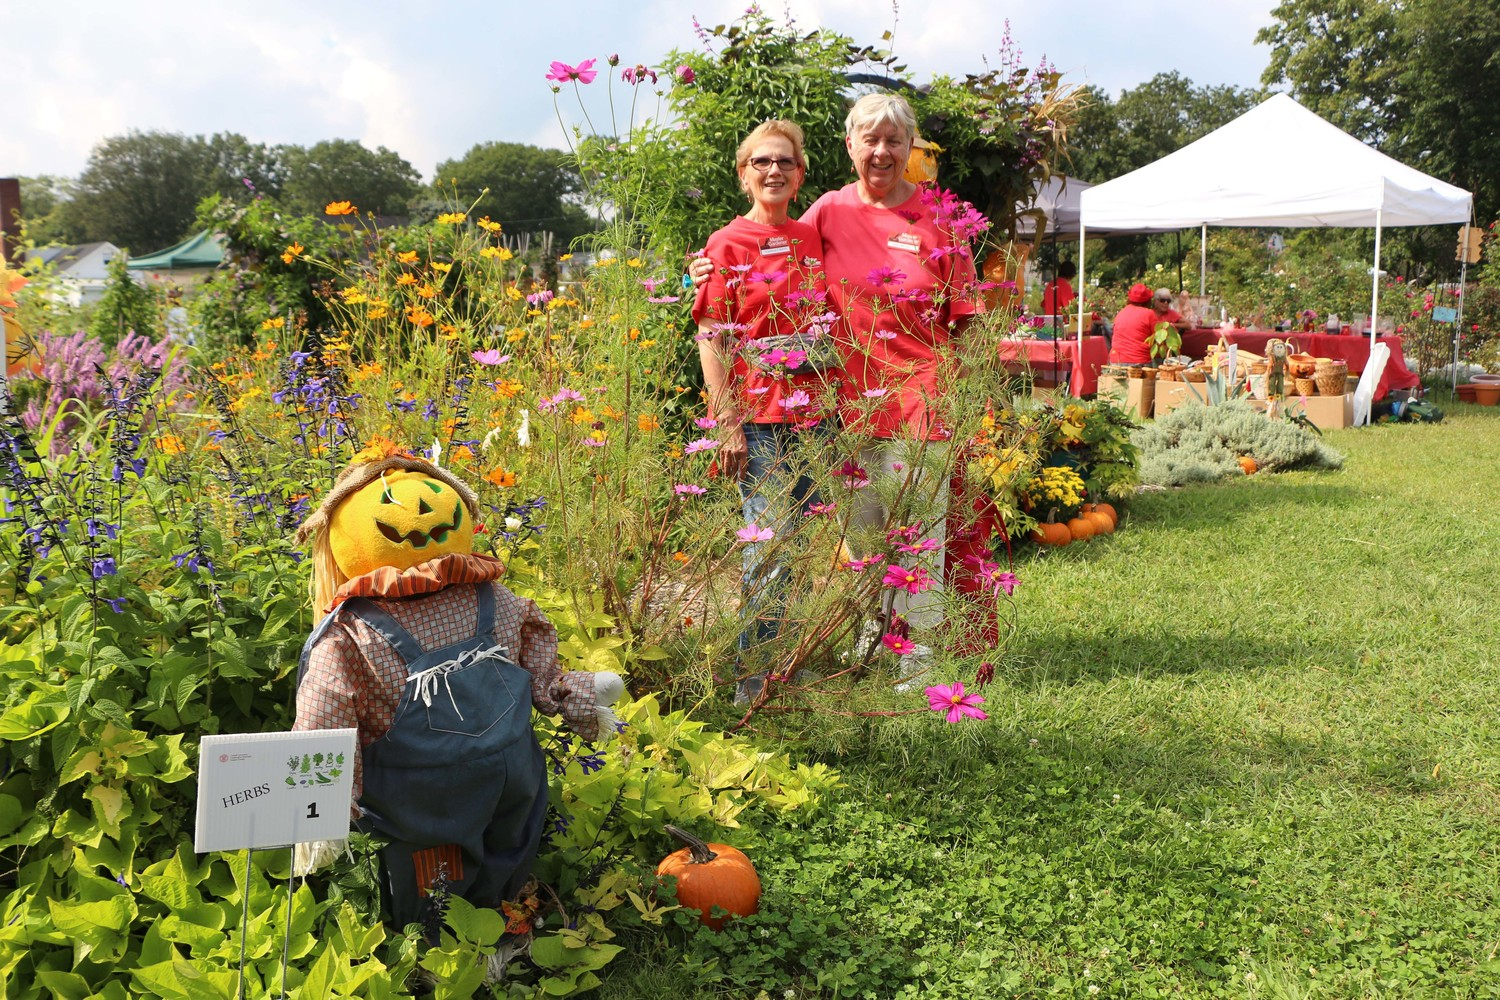 East Meadow Farm Master Gardeners Veronica Caiazza and Nonie Muellers joined community members for the farm's annual Family Fun Day on Sept. 16.